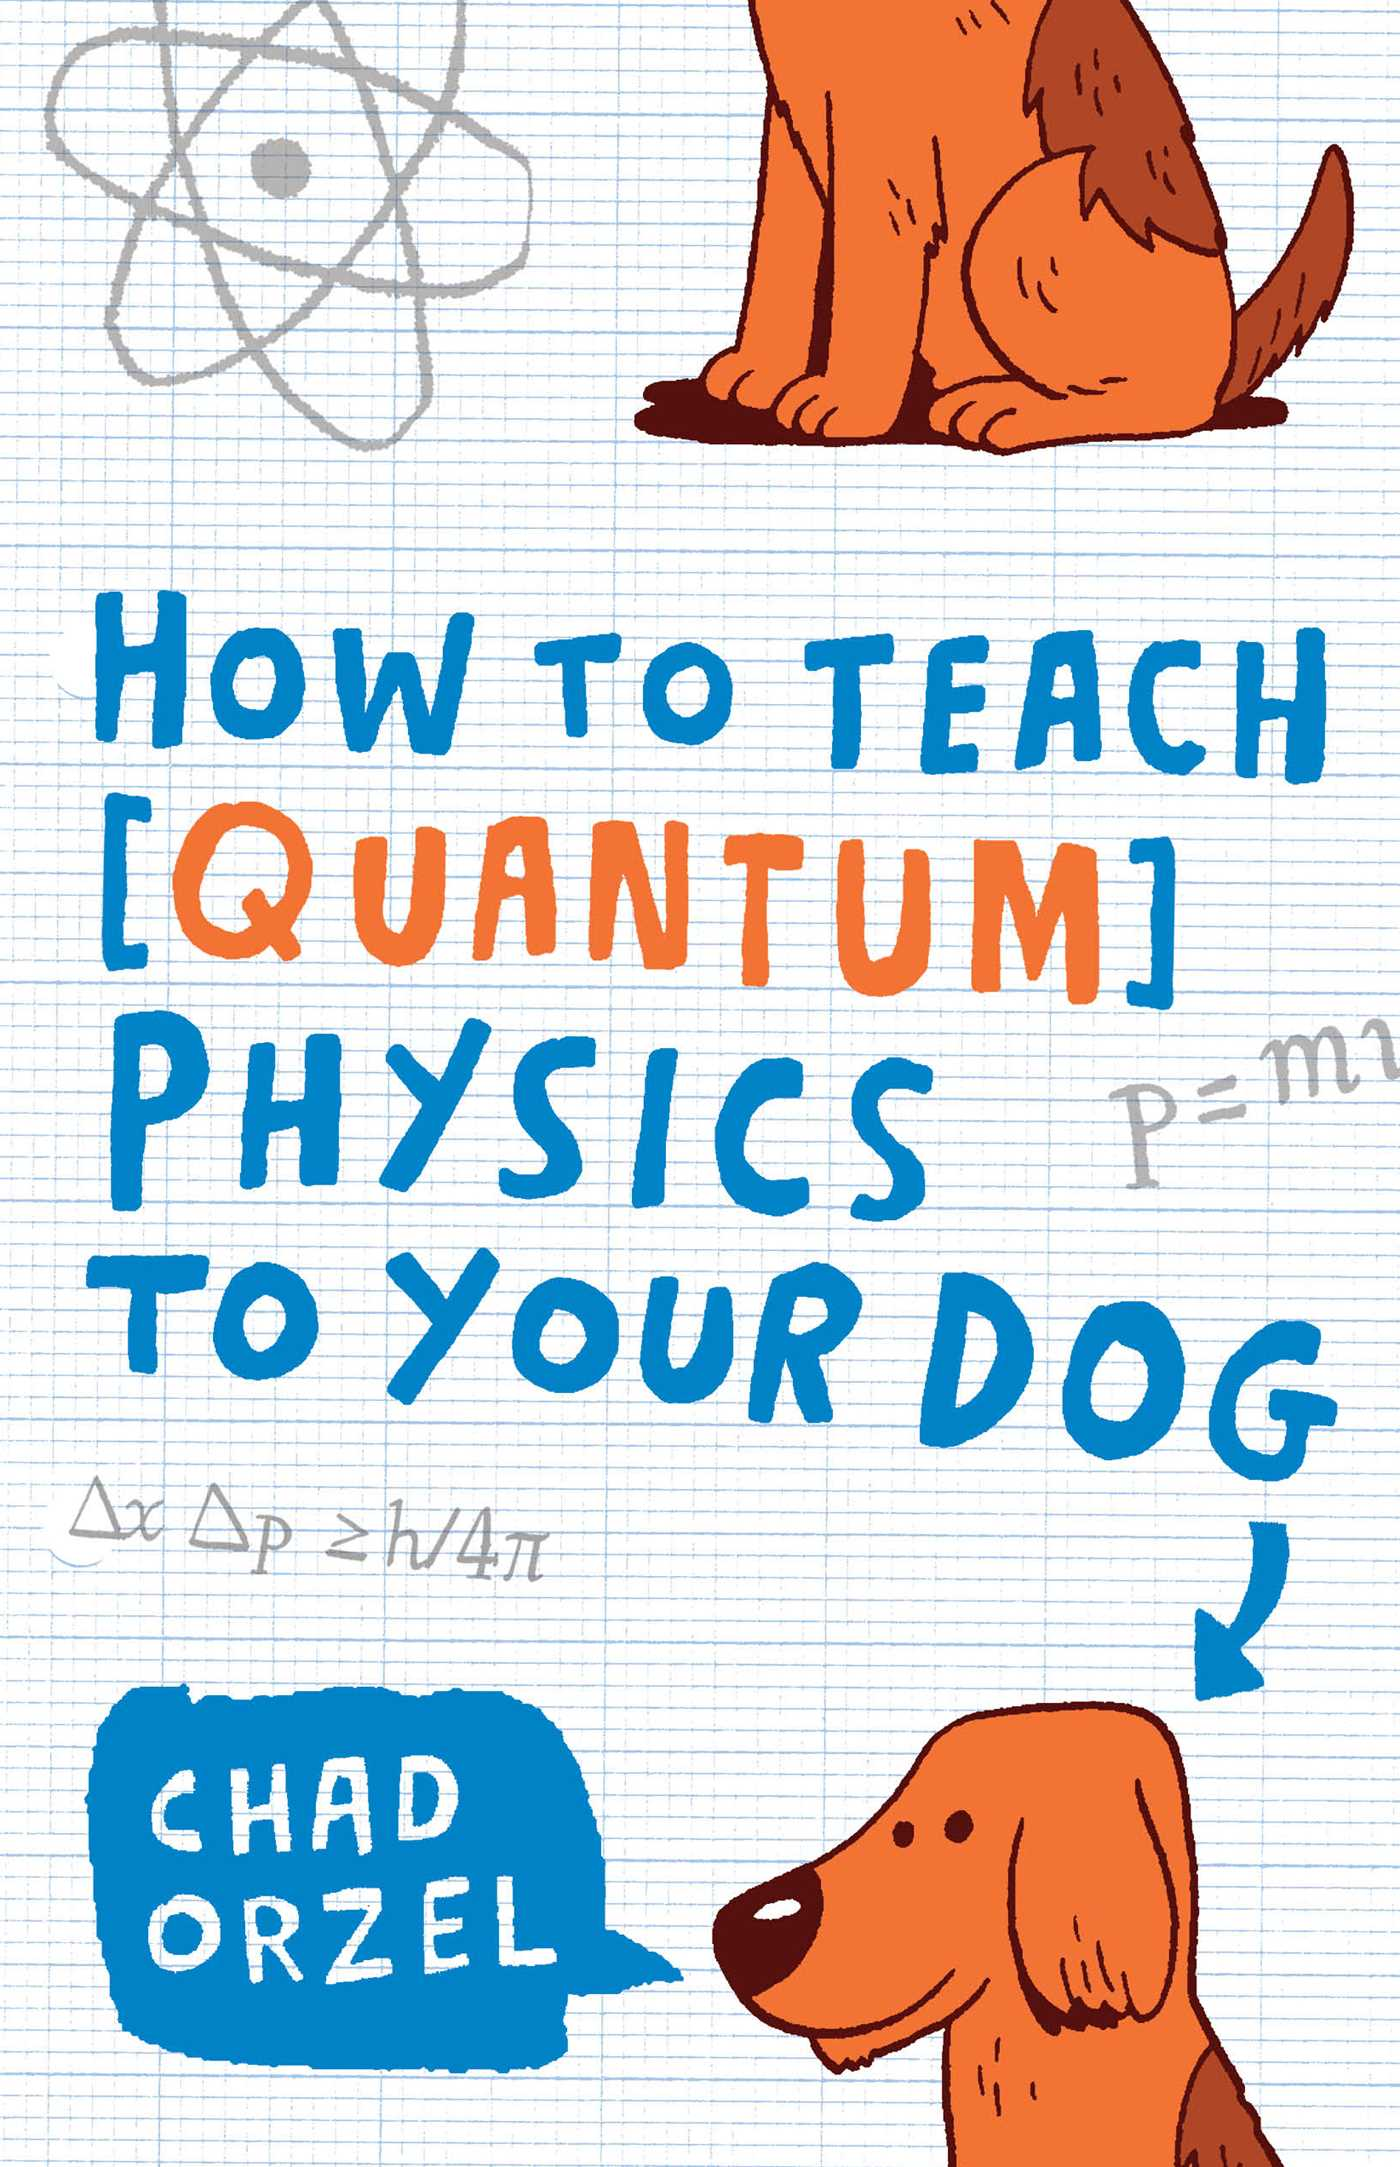 How-to-teach-physics-to-your-dog-9781416572299_hr